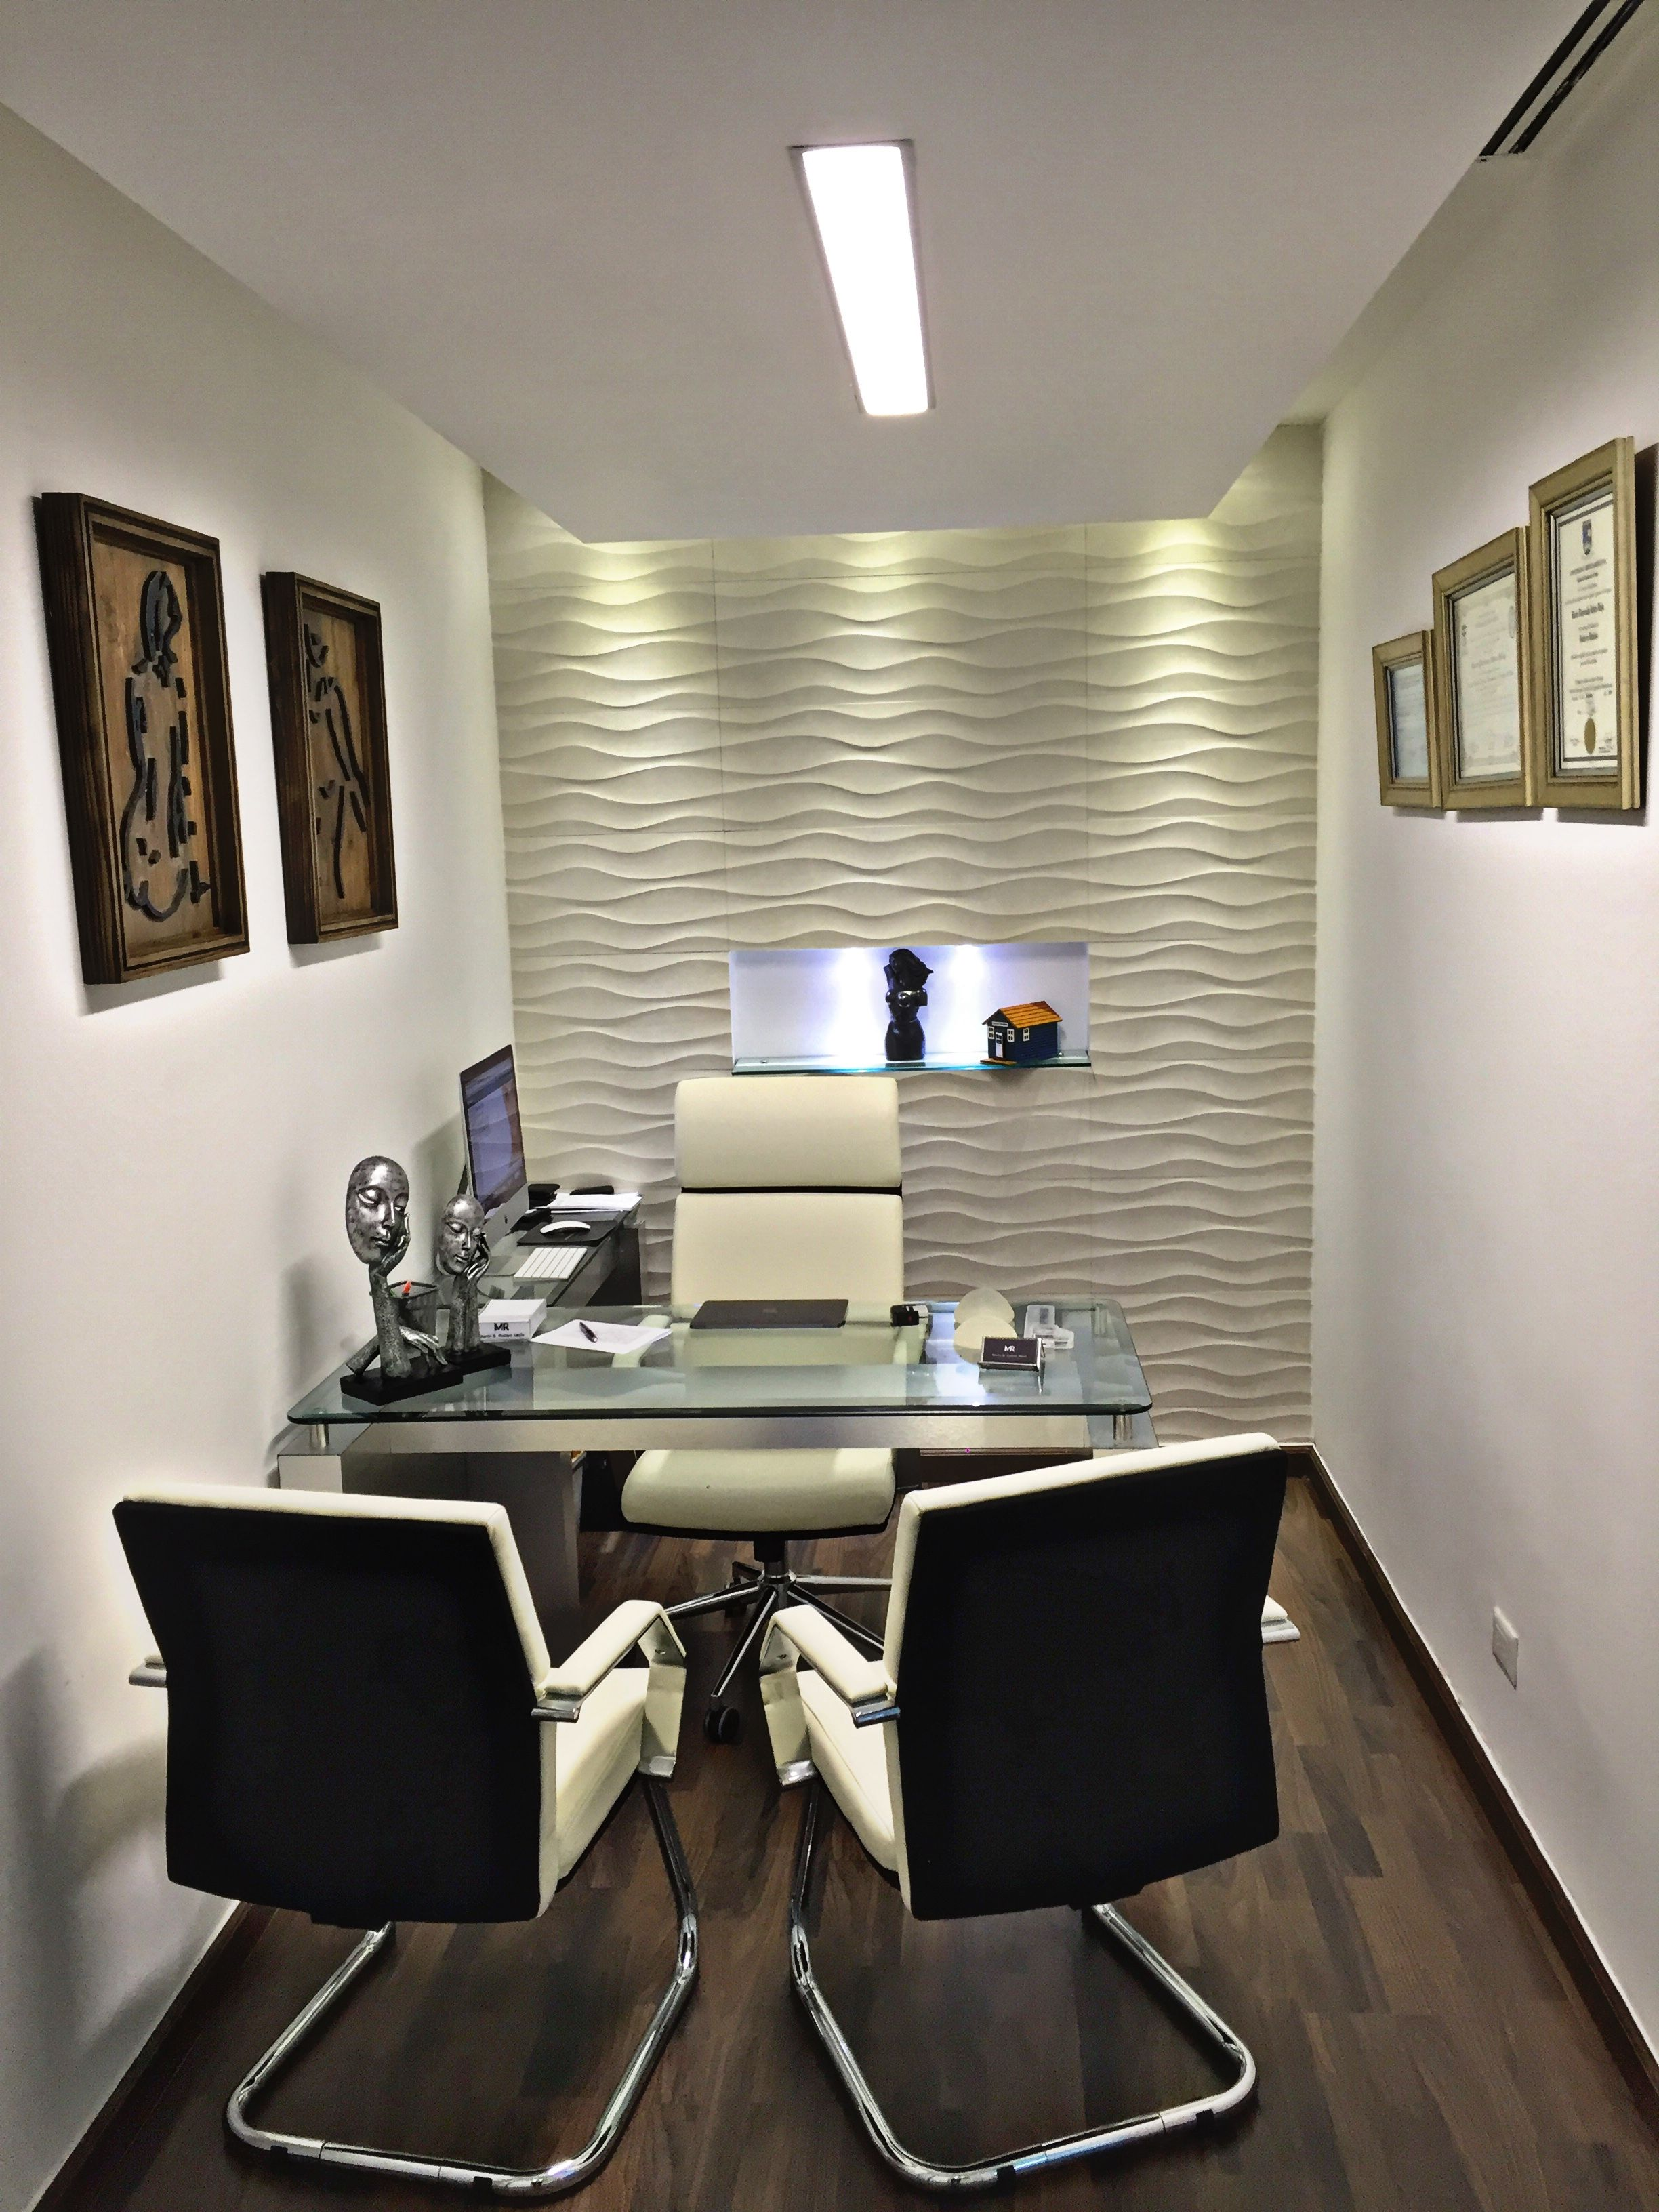 Dr m office santo domingo dominican republic for Small office cabin interior design ideas